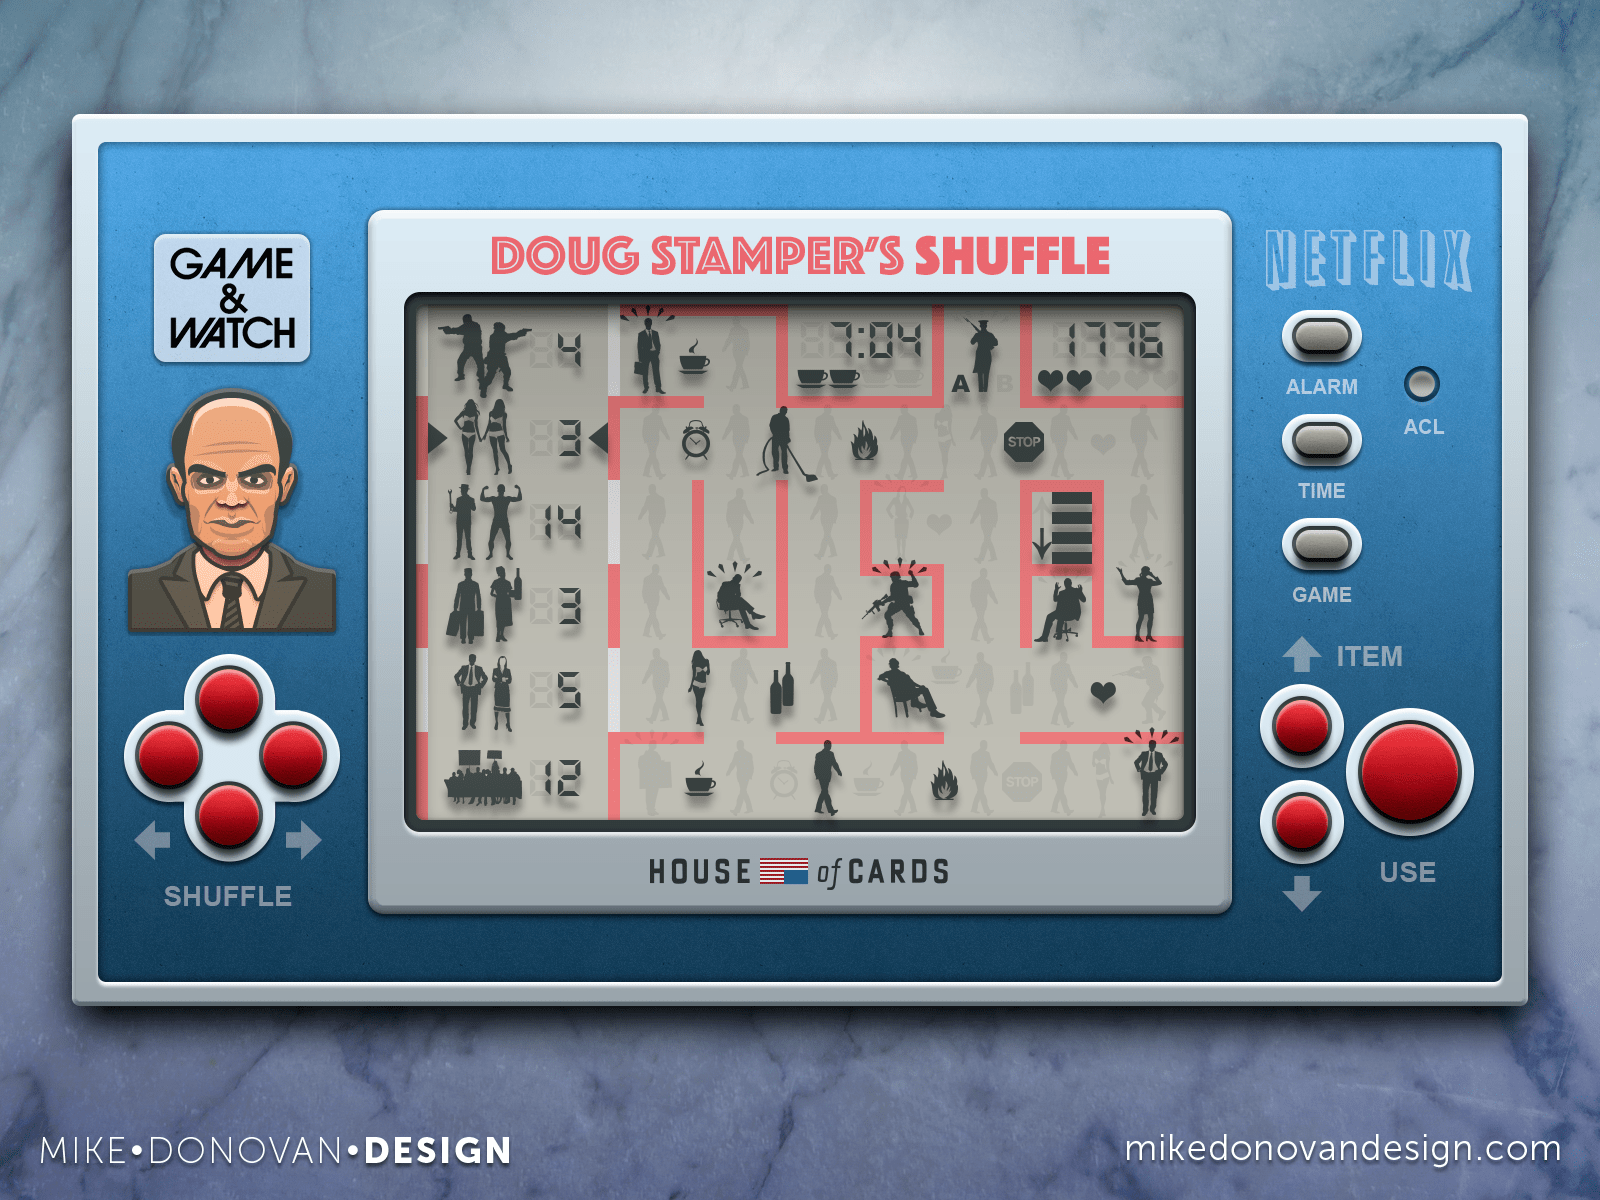 Doug Stamper's Shuffle Game Concept